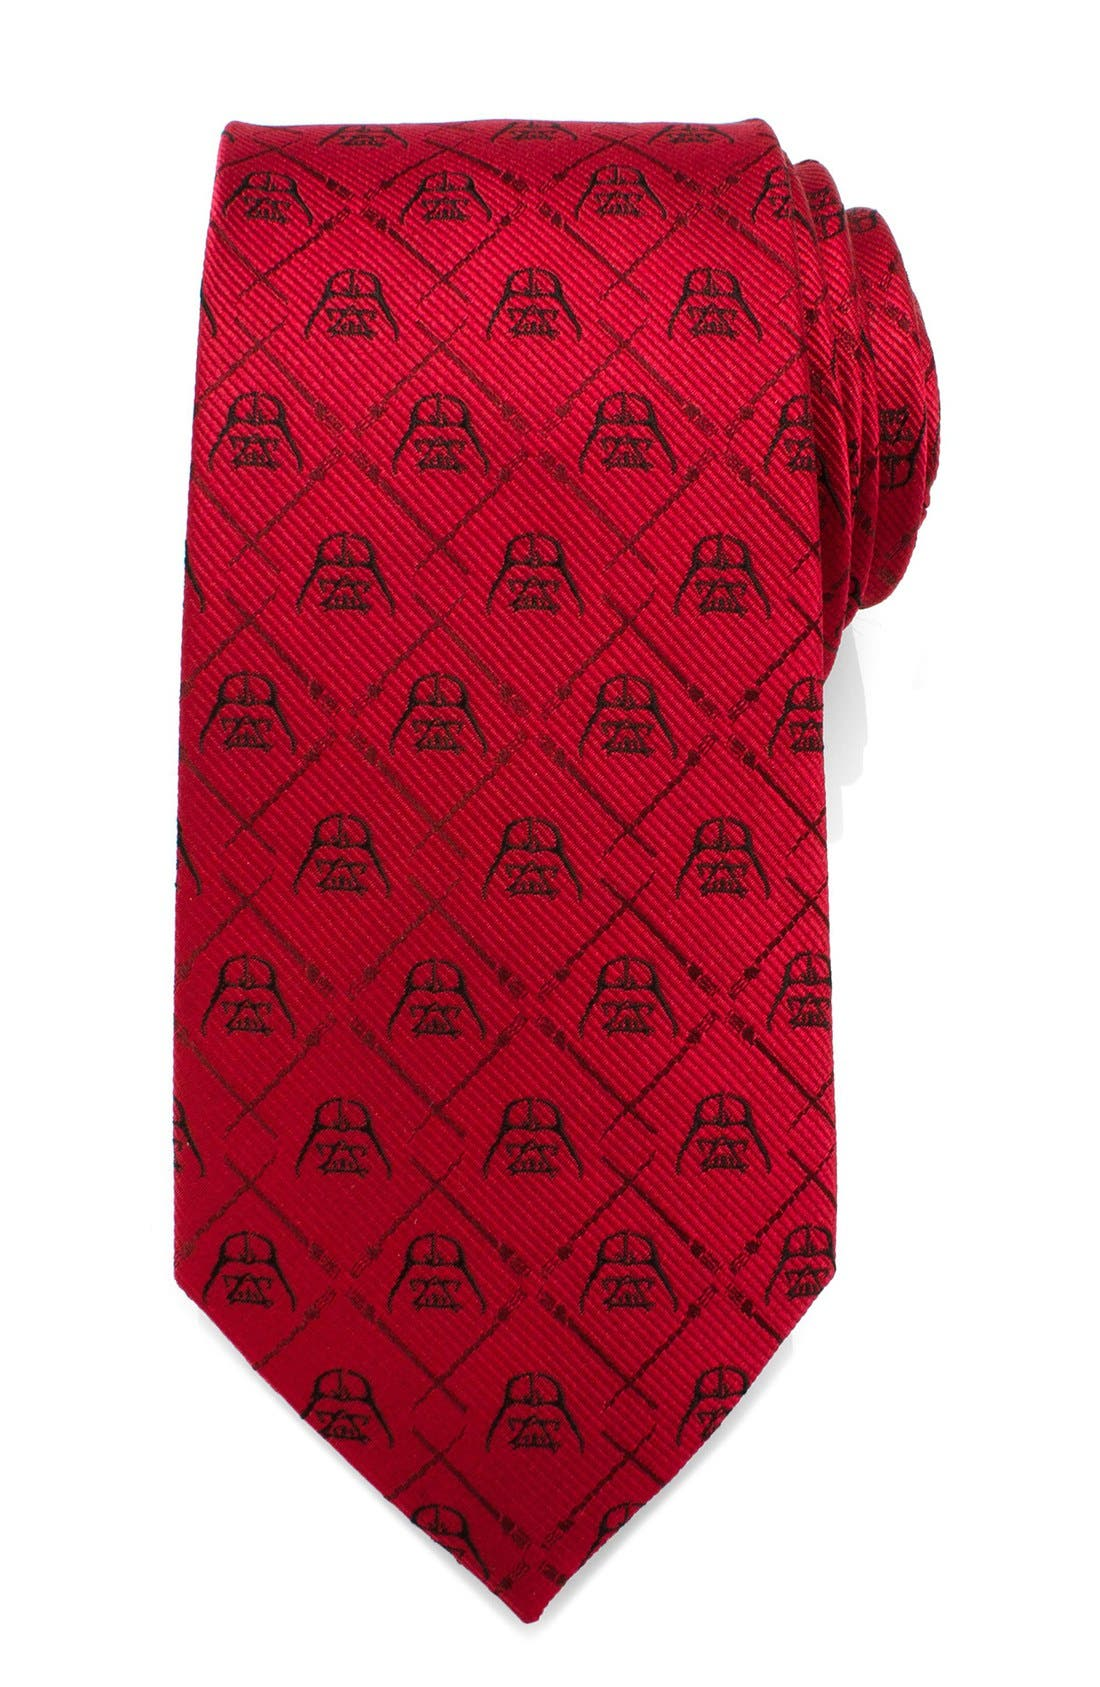 Alternate Image 1 Selected - Cufflinks, Inc. 'Darth Vader' Silk Tie